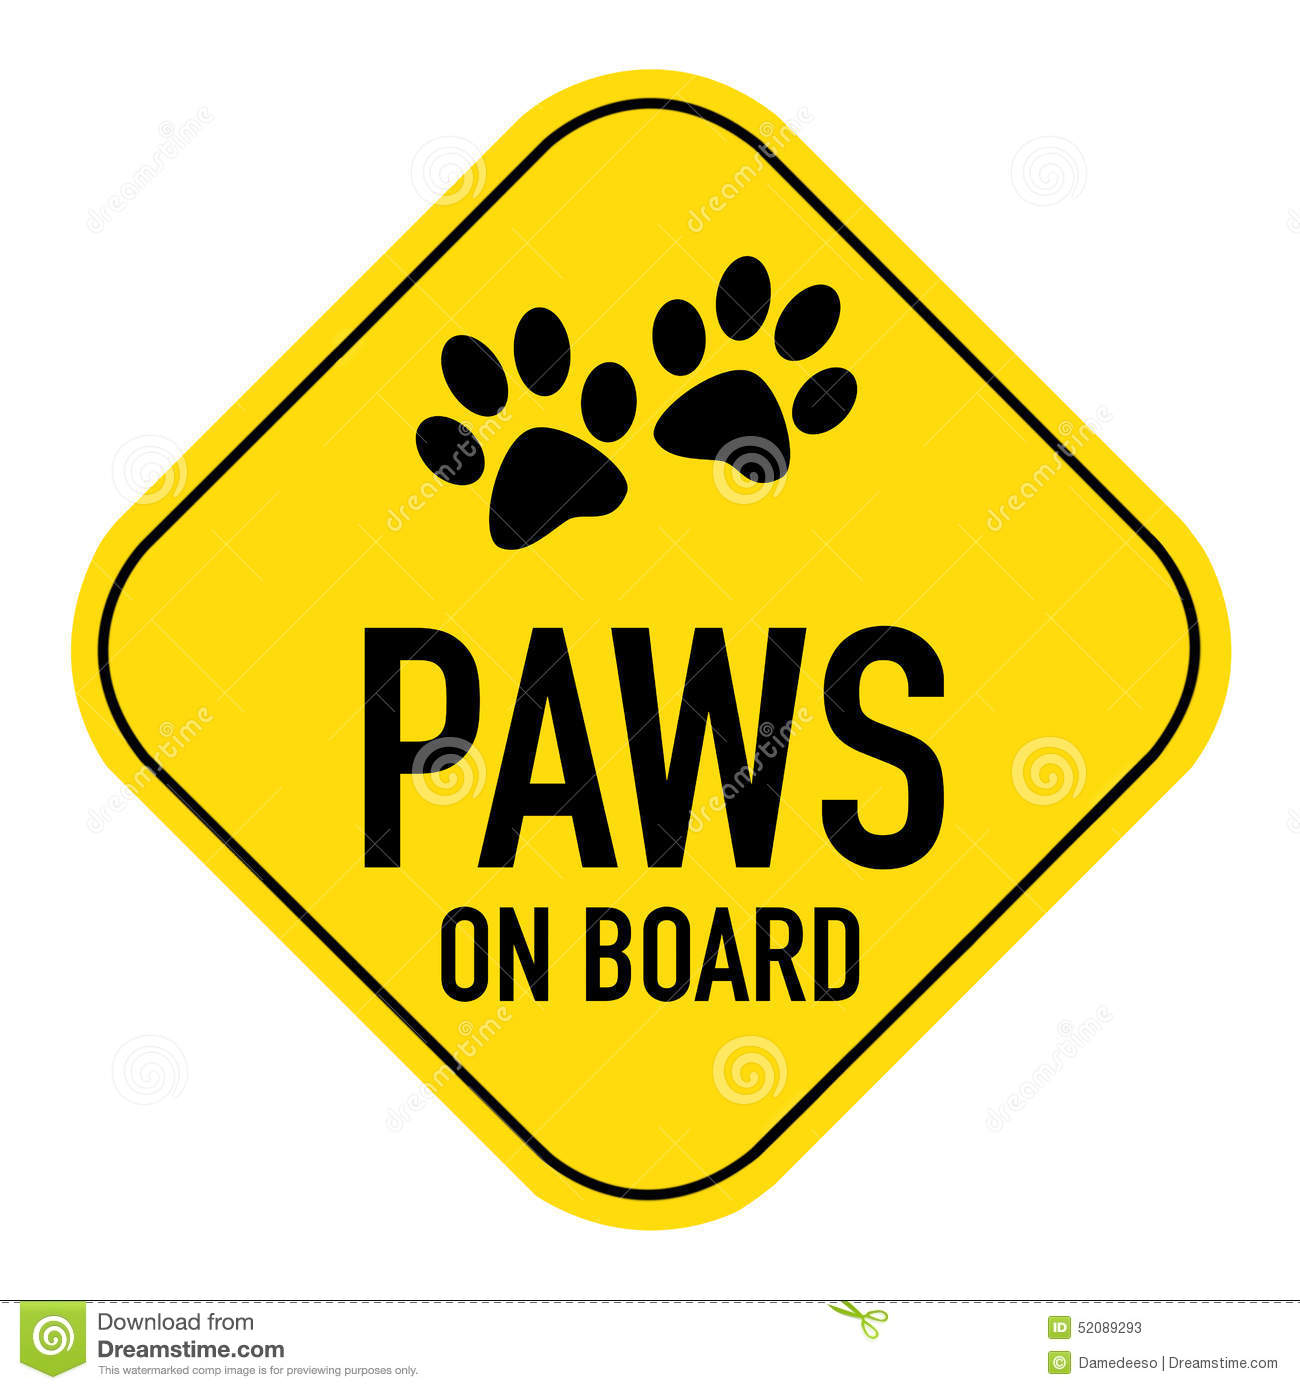 Paws Board Sign Silhouette Illustration Yellow Placard Showing Words Isolated White Background on Z Car Symbol